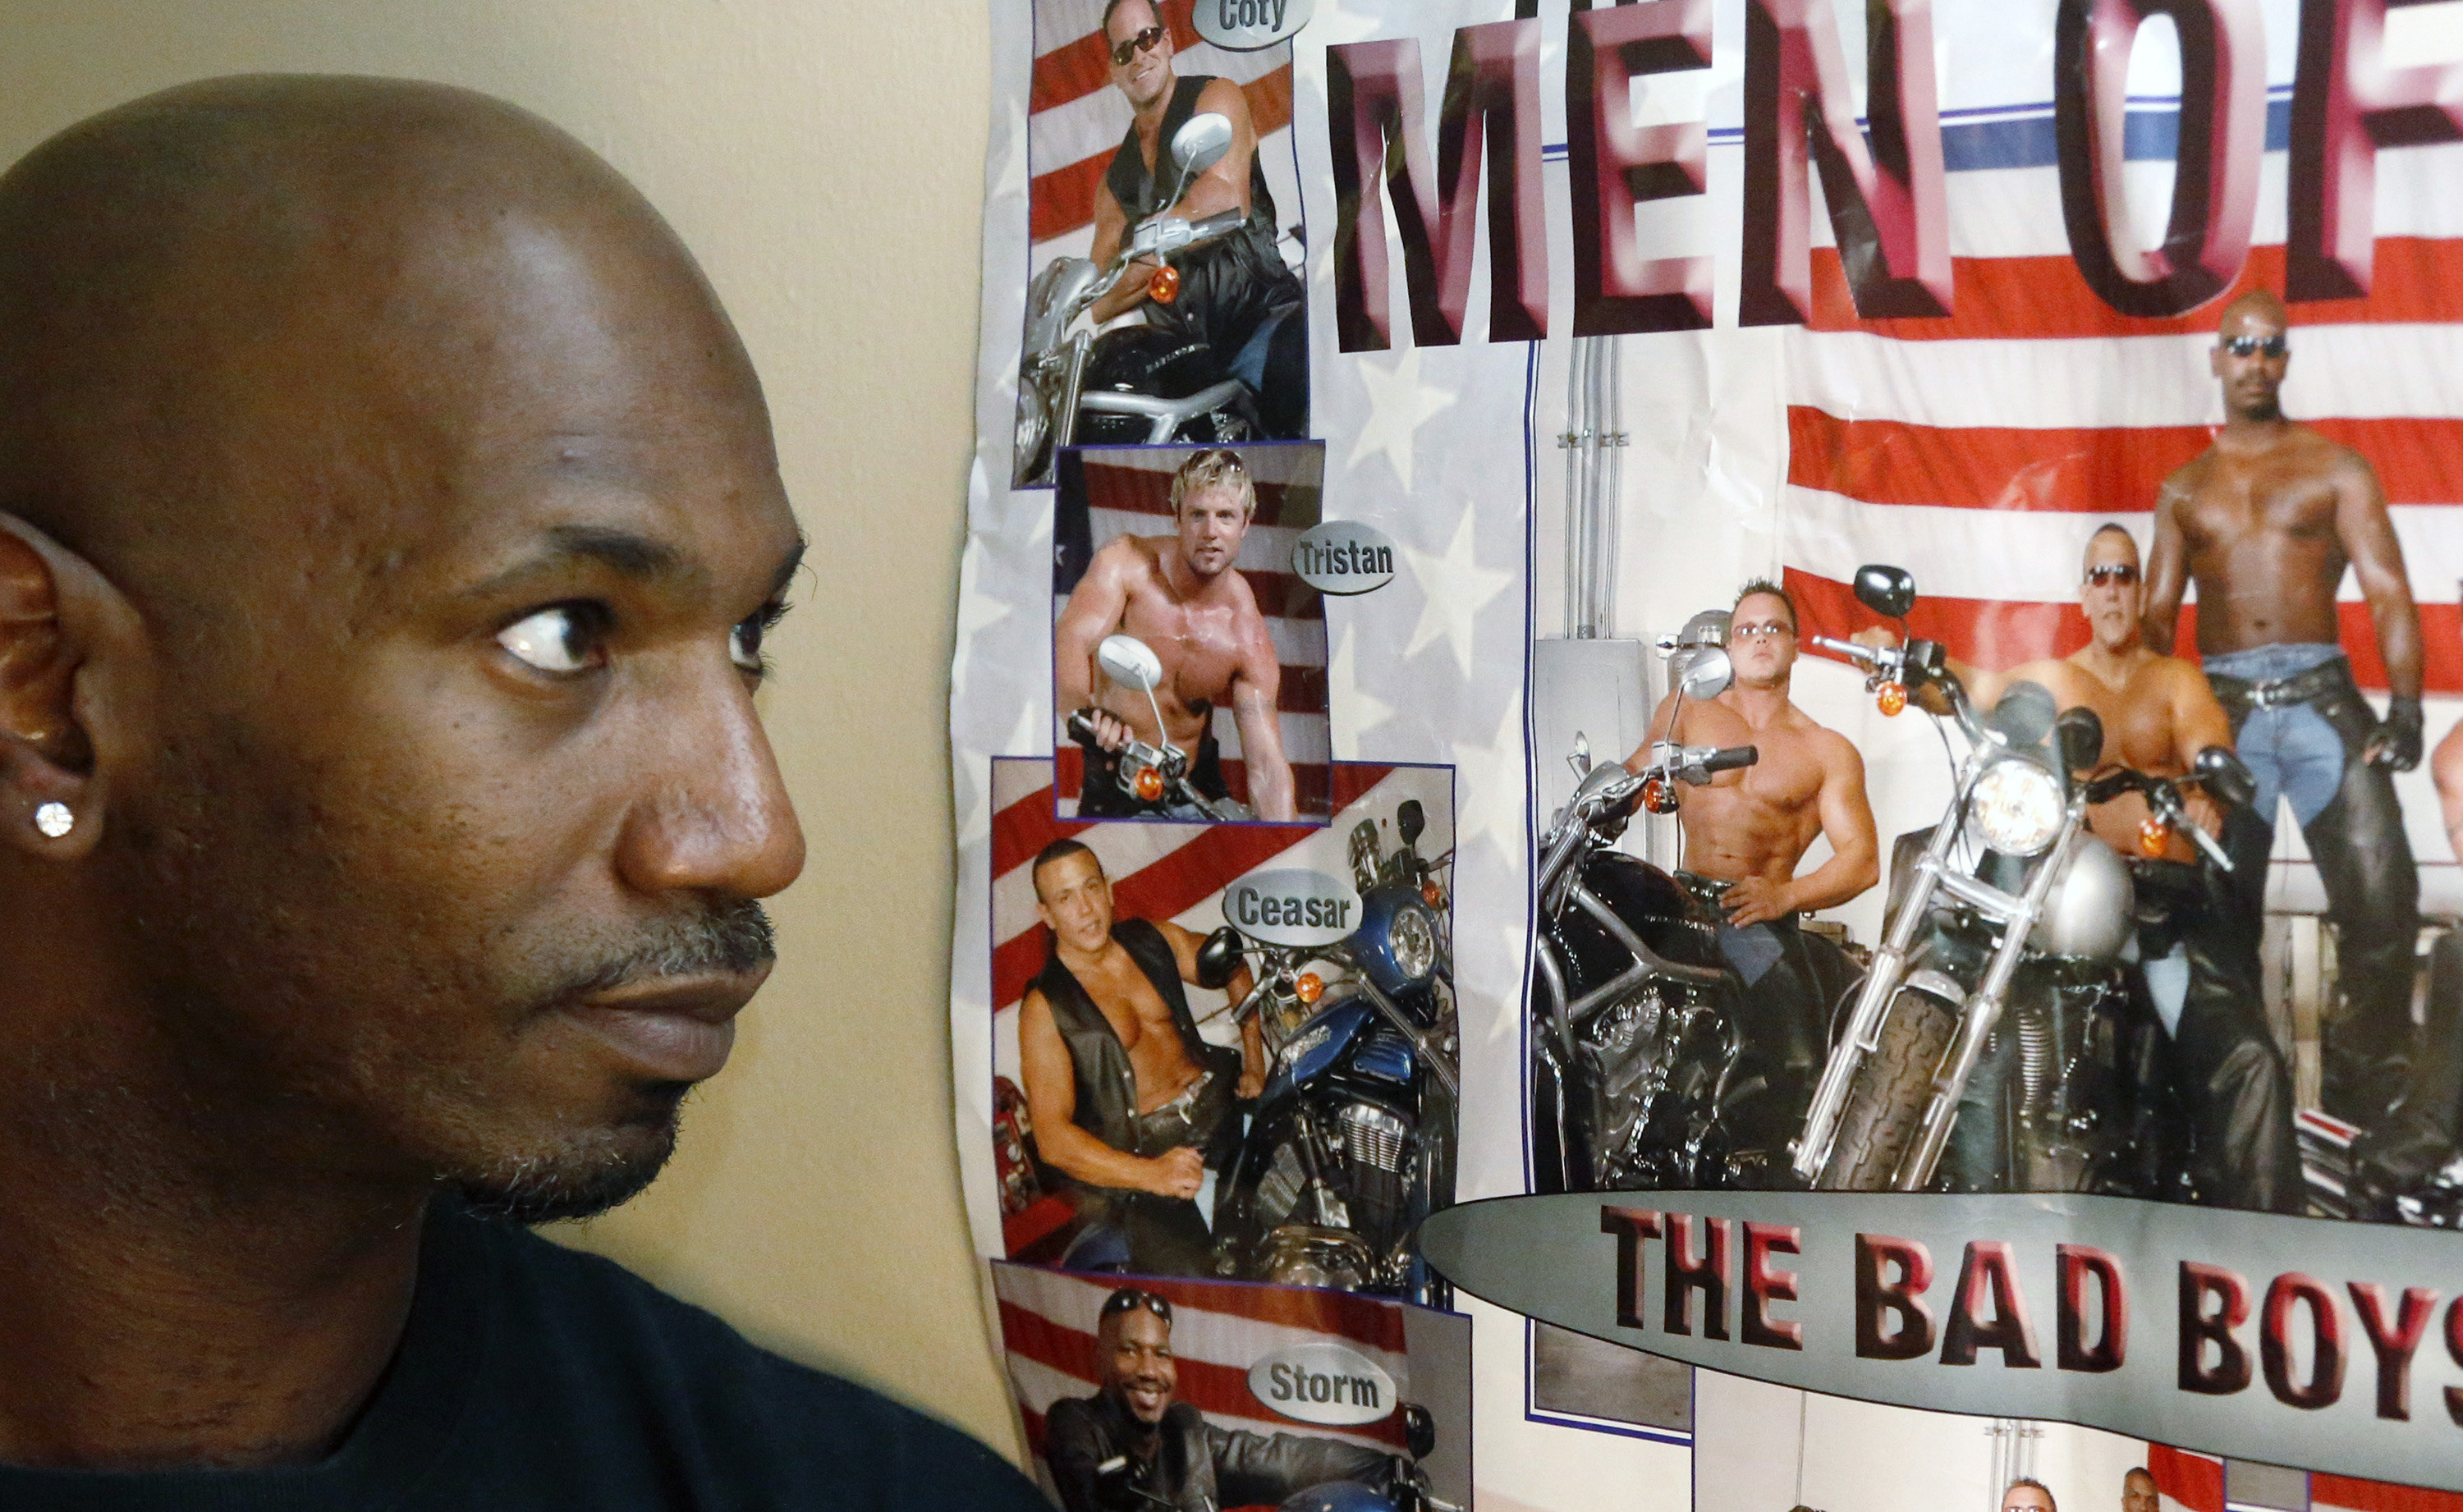 Former male dancer David Crosby, left, looks at a poster showing Cesar Sayoc